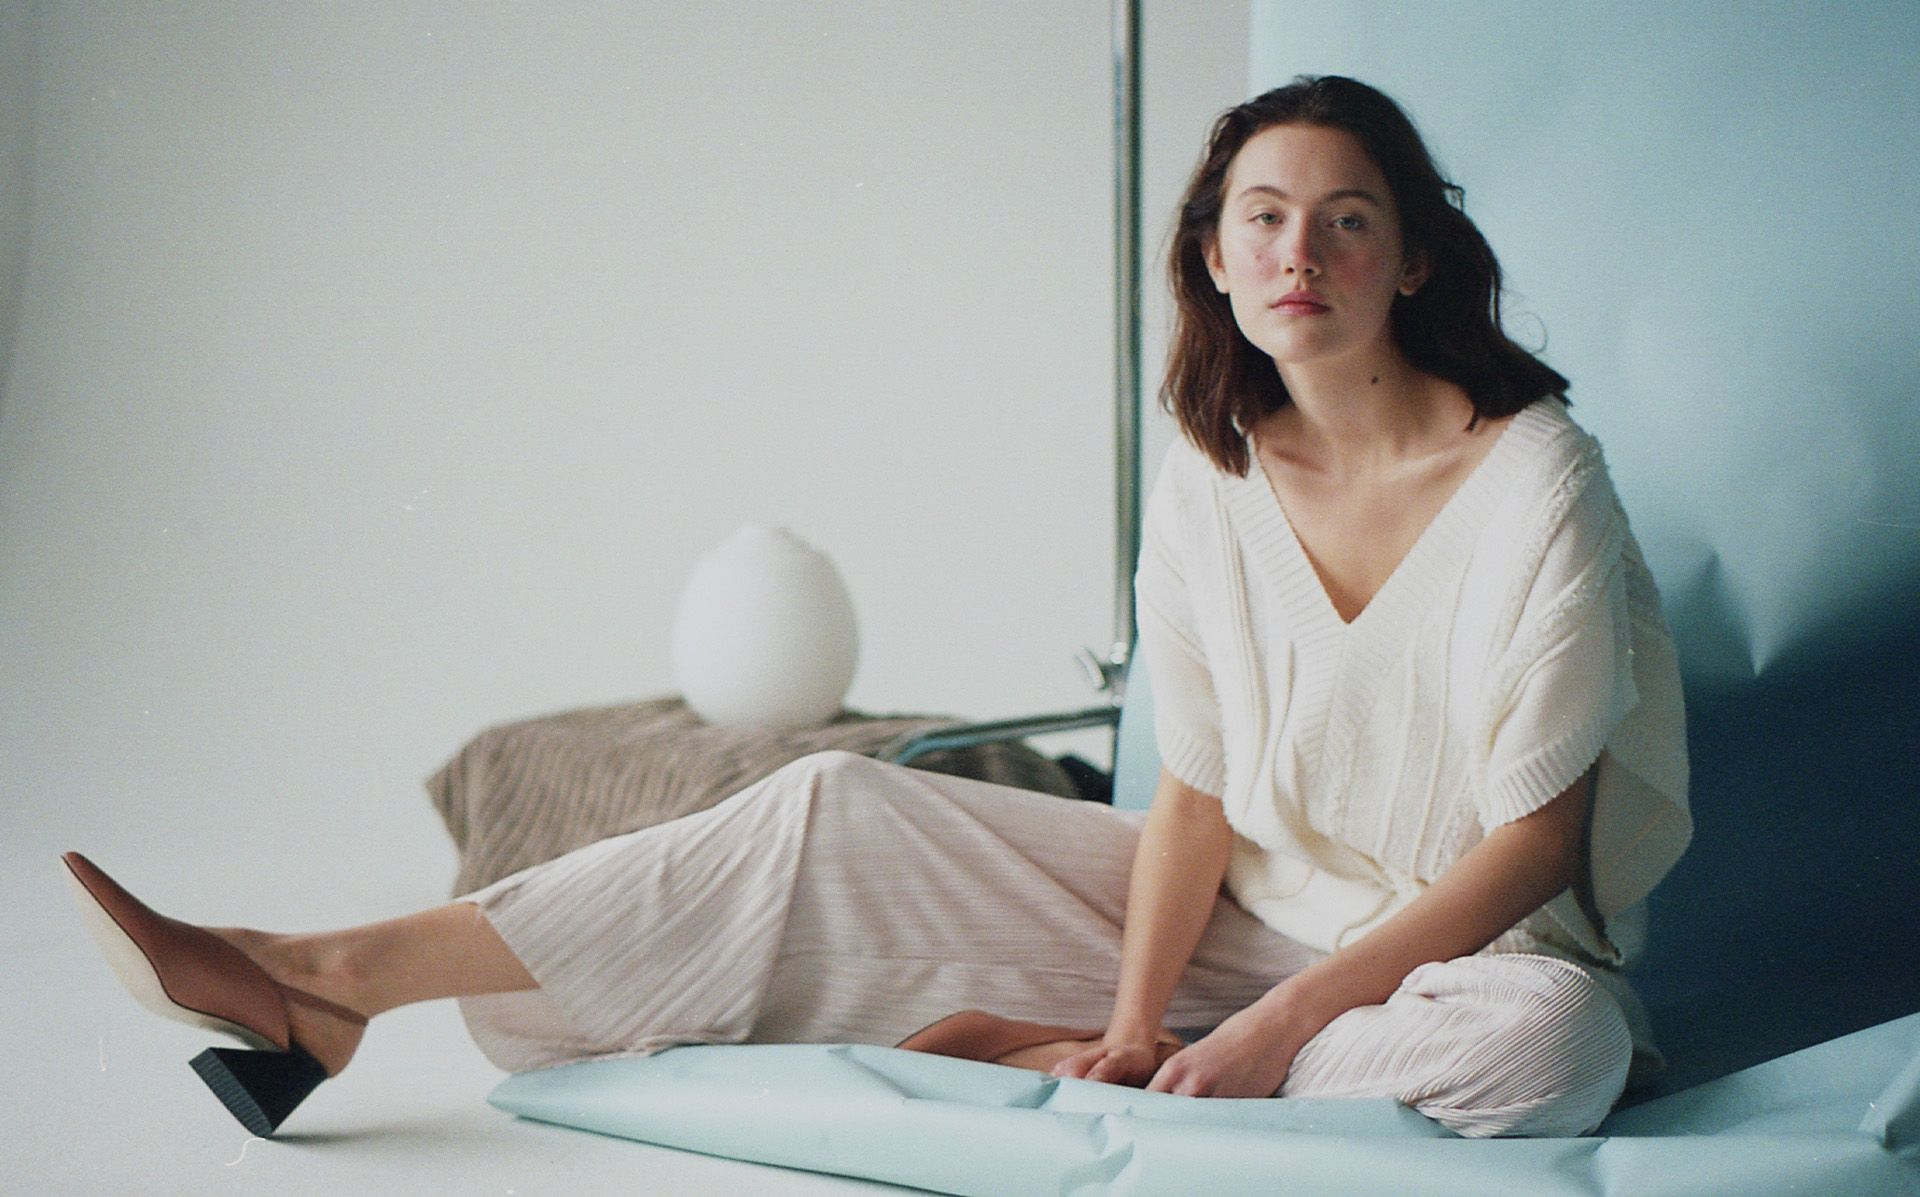 female model Jana sitting on ground on light blue paper background wearing white knit sweater and large white pants with brown pointy shoes looking at camera photographed by Naomie from Studio TB for project Sculpting Jana